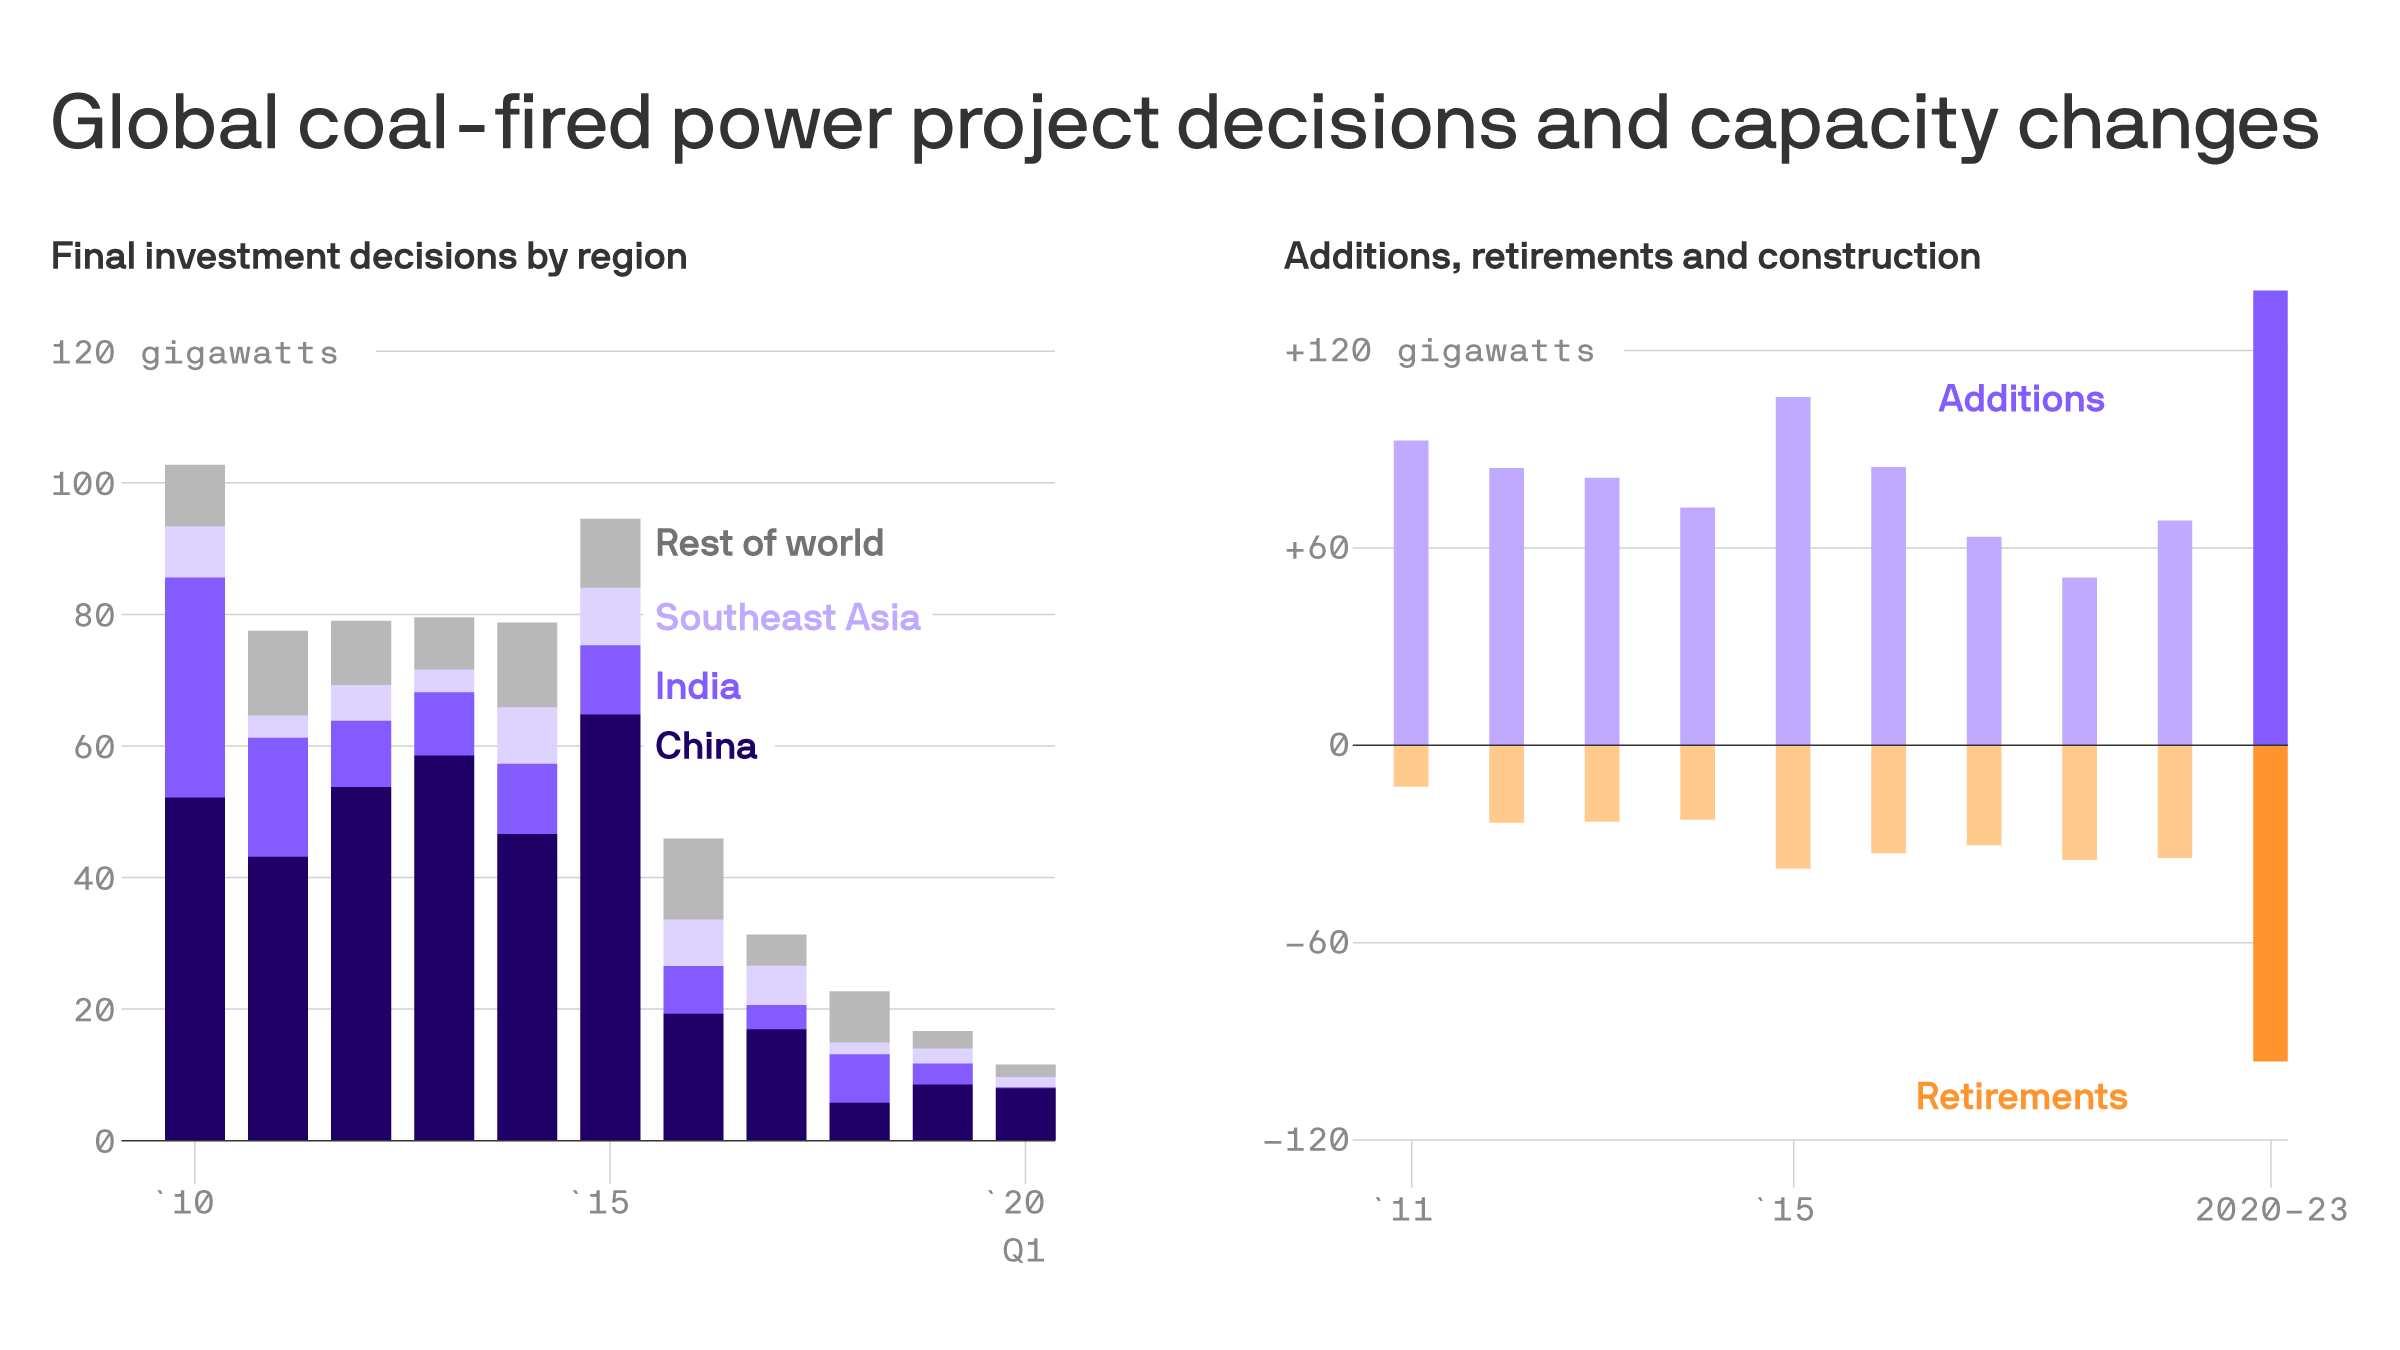 Coal remains huge global electricity player despite declines in U.S. and Europe